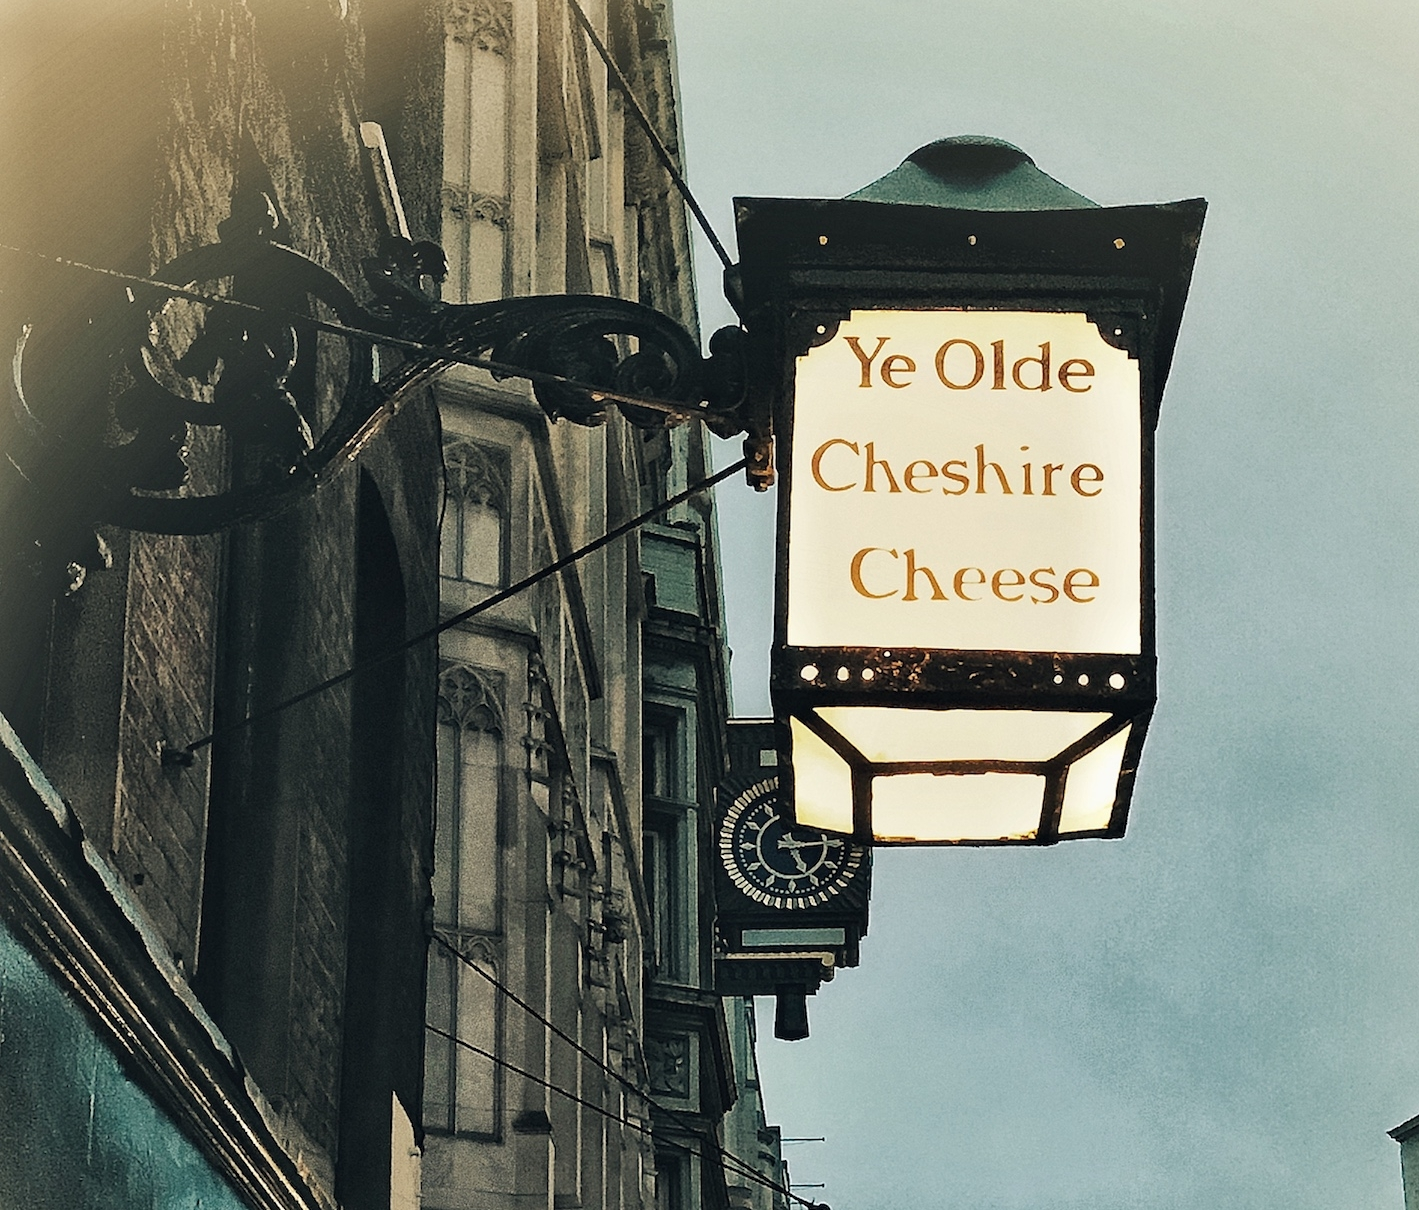 Ye Olde Cheshire Cheese with St Pauls in the background